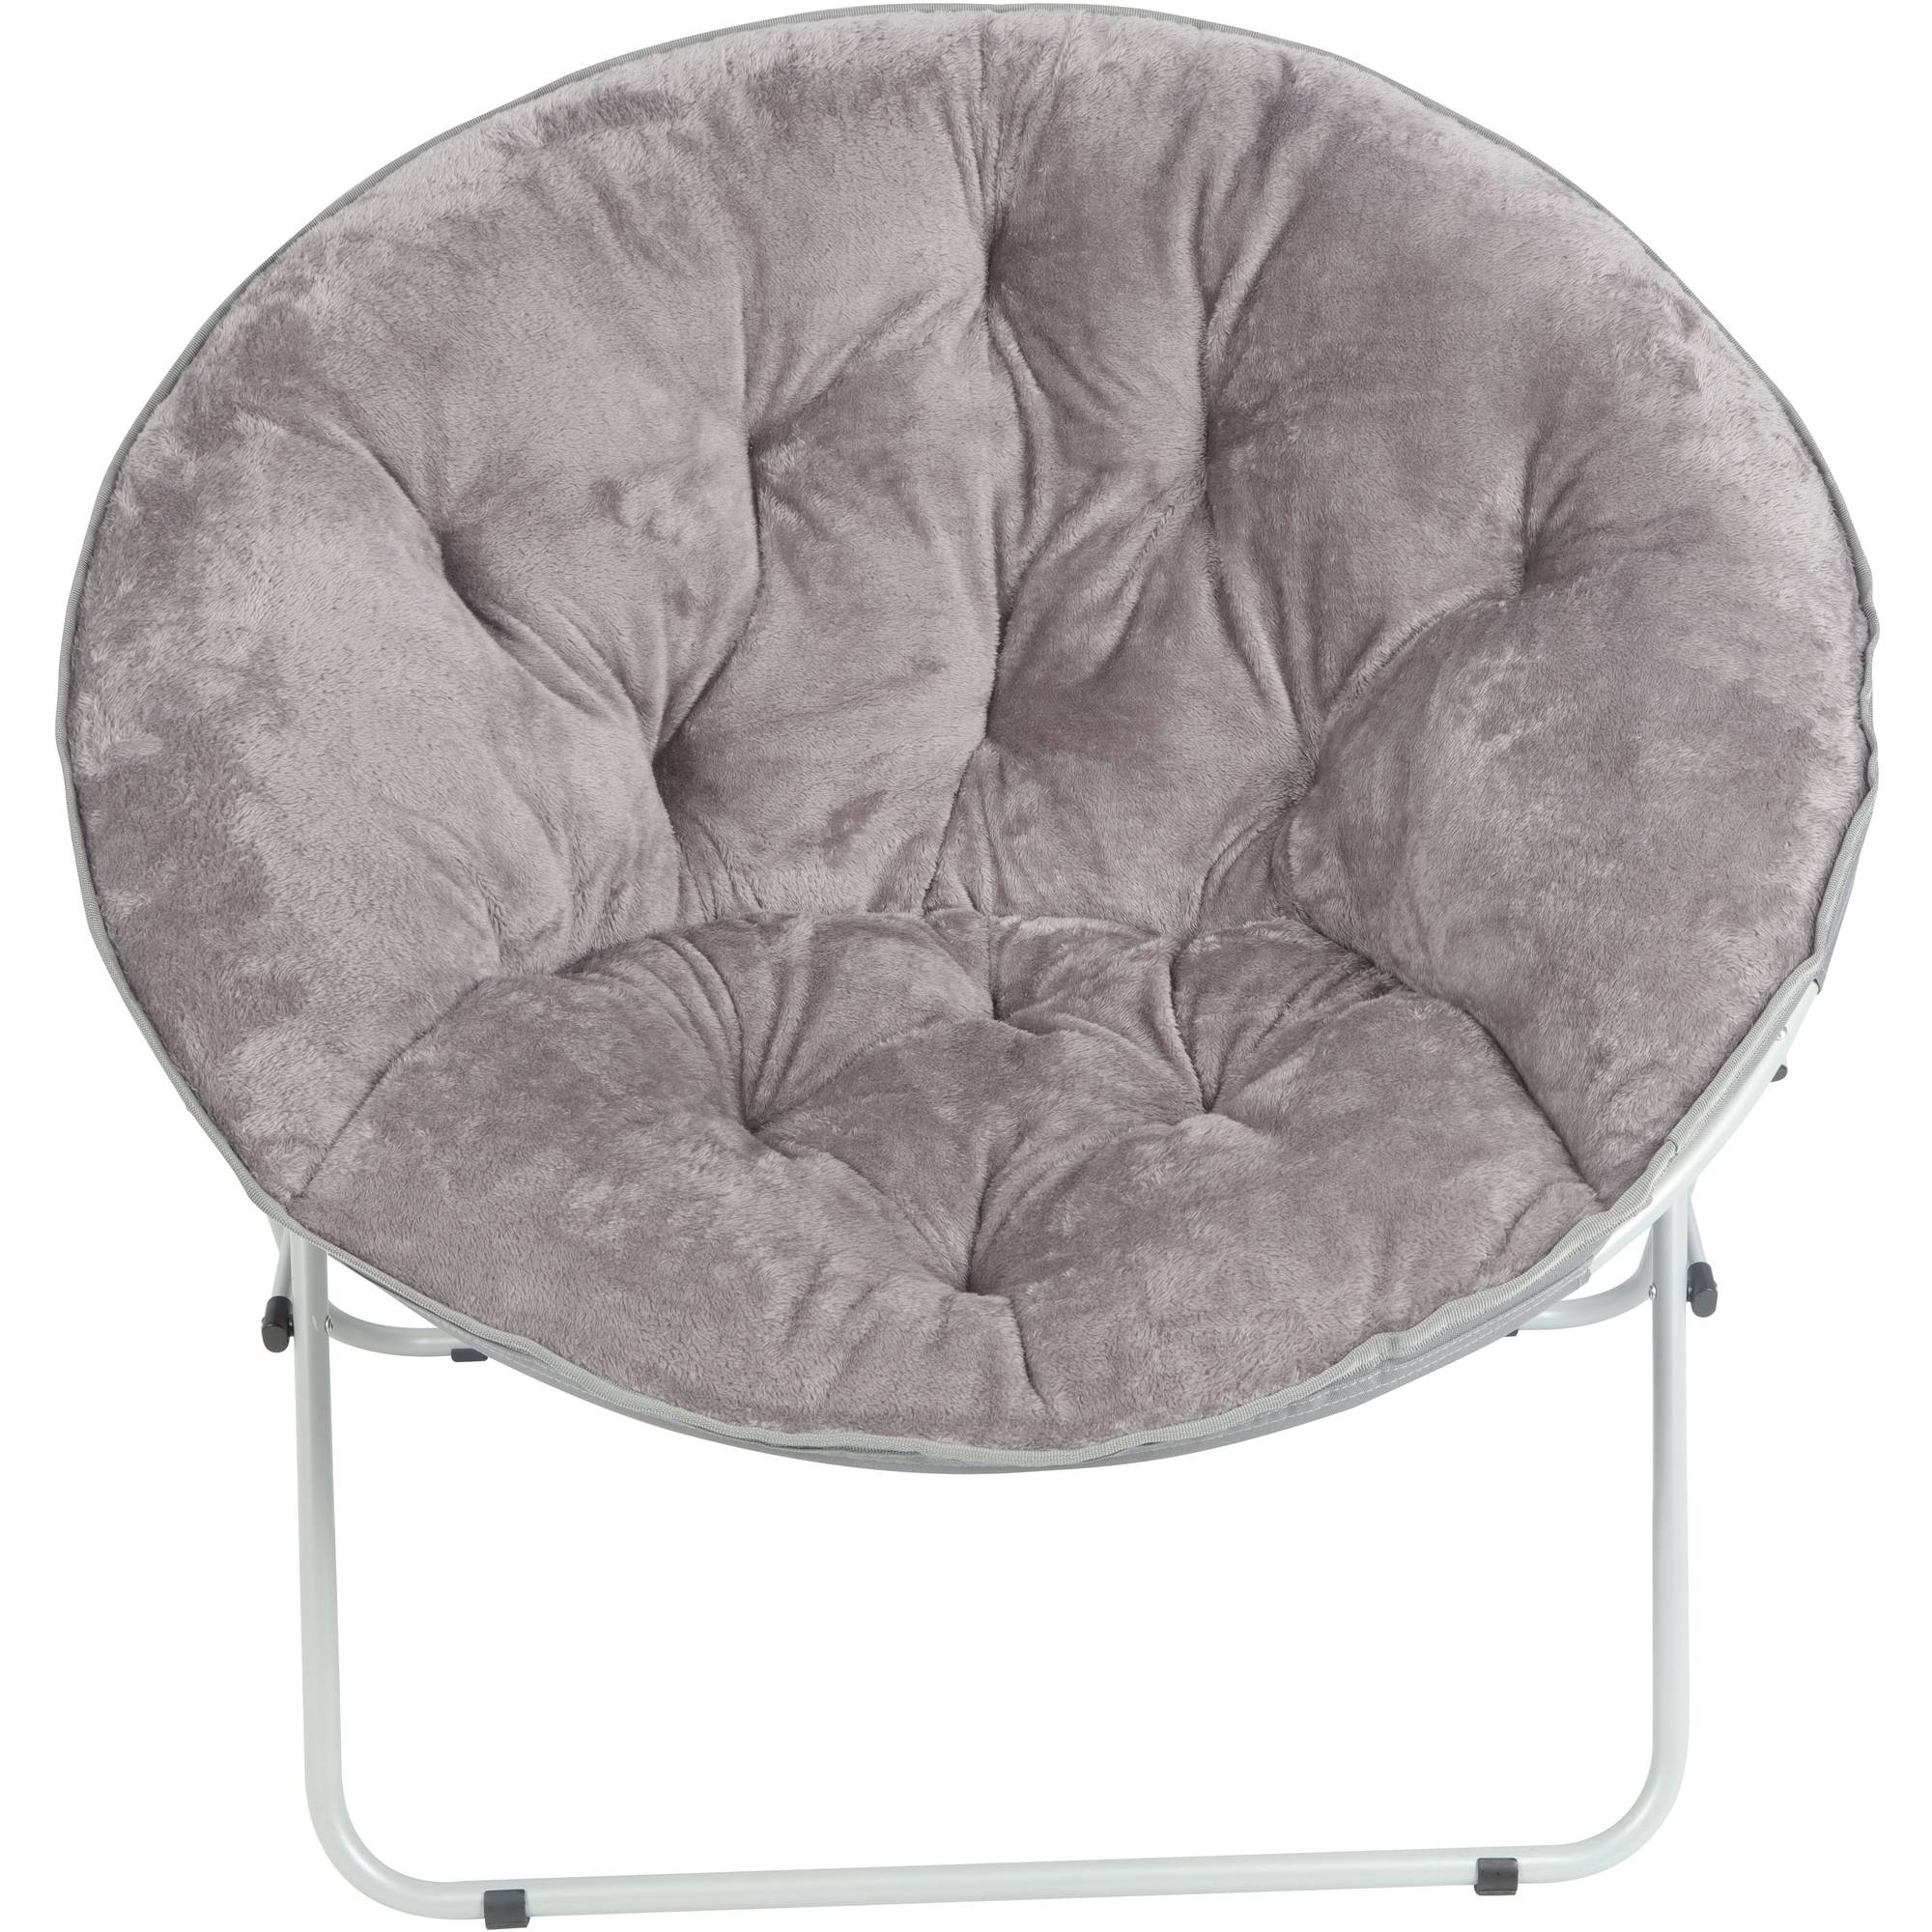 Mainstays Oversized Saucer Chair, Multiple Colors